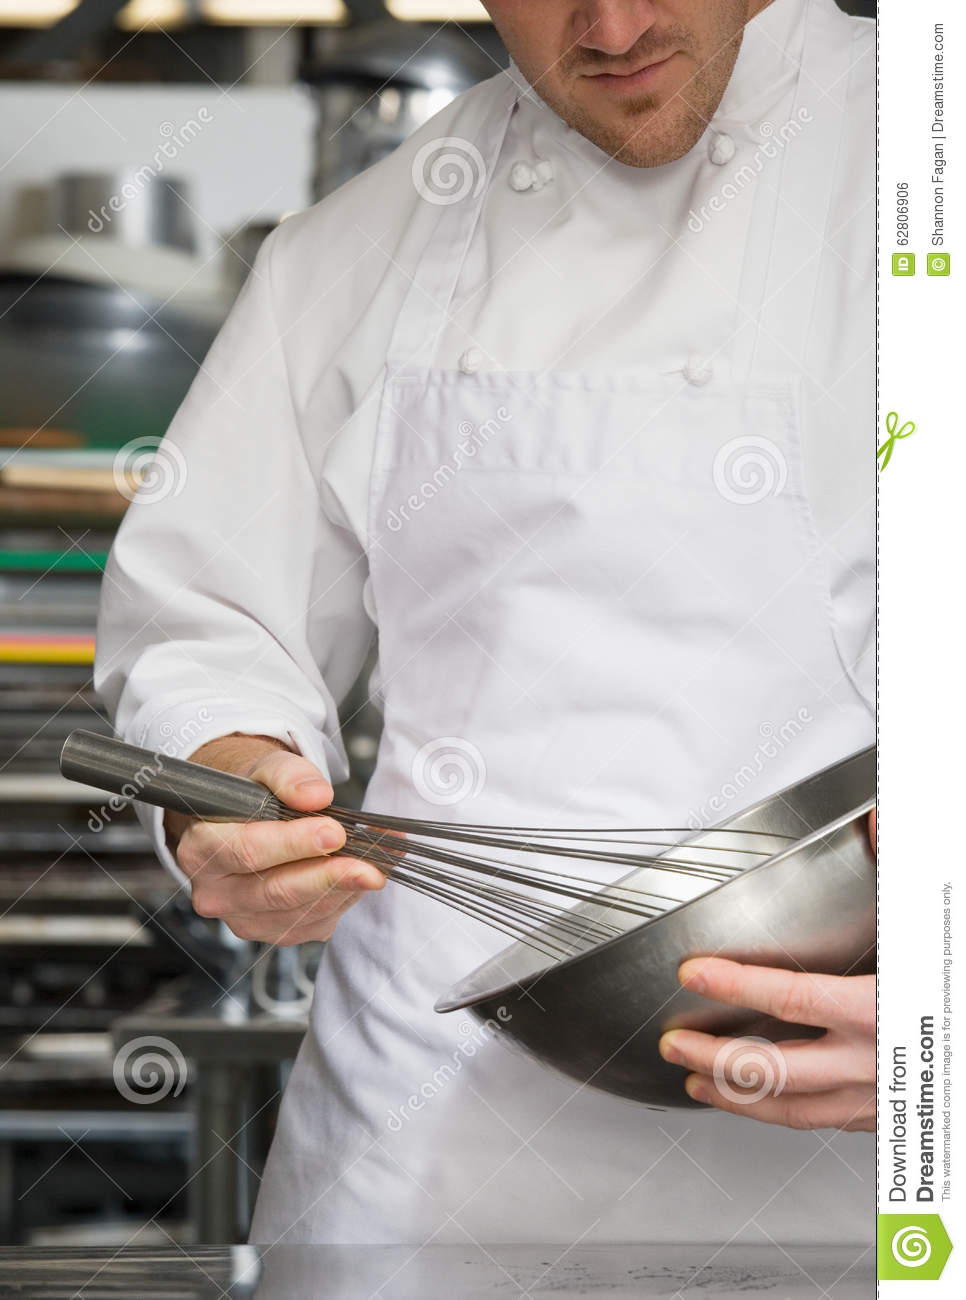 Chef whisking